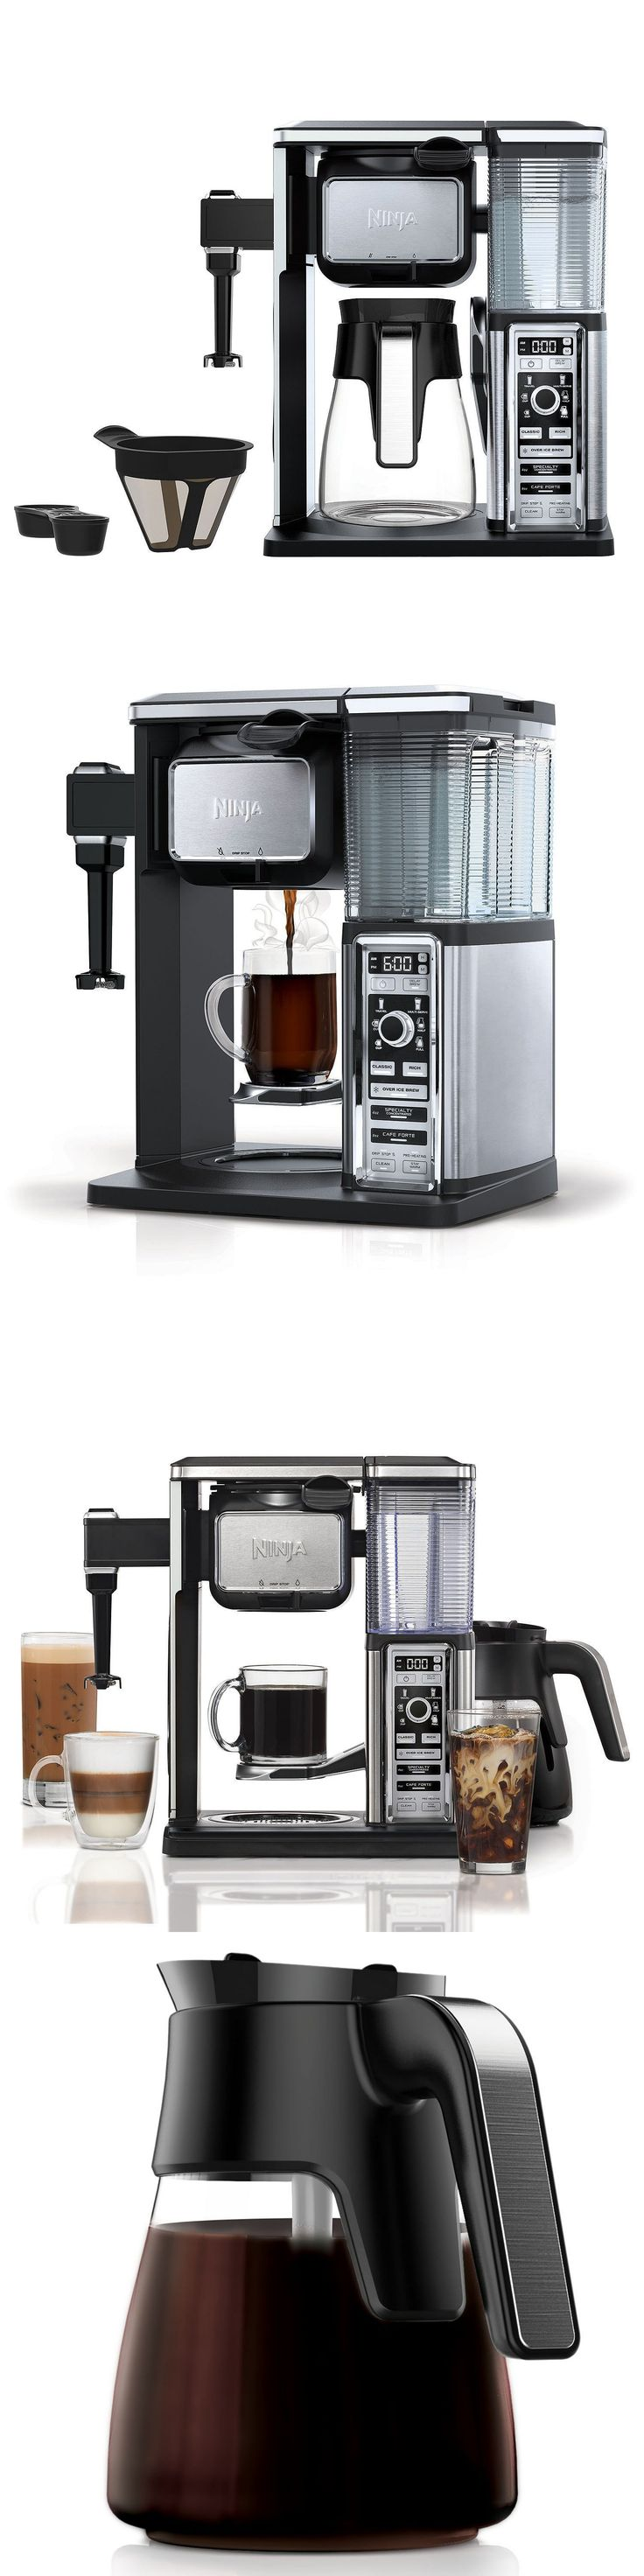 Best 25+ Single cup coffee maker ideas only on Pinterest | Pour ...